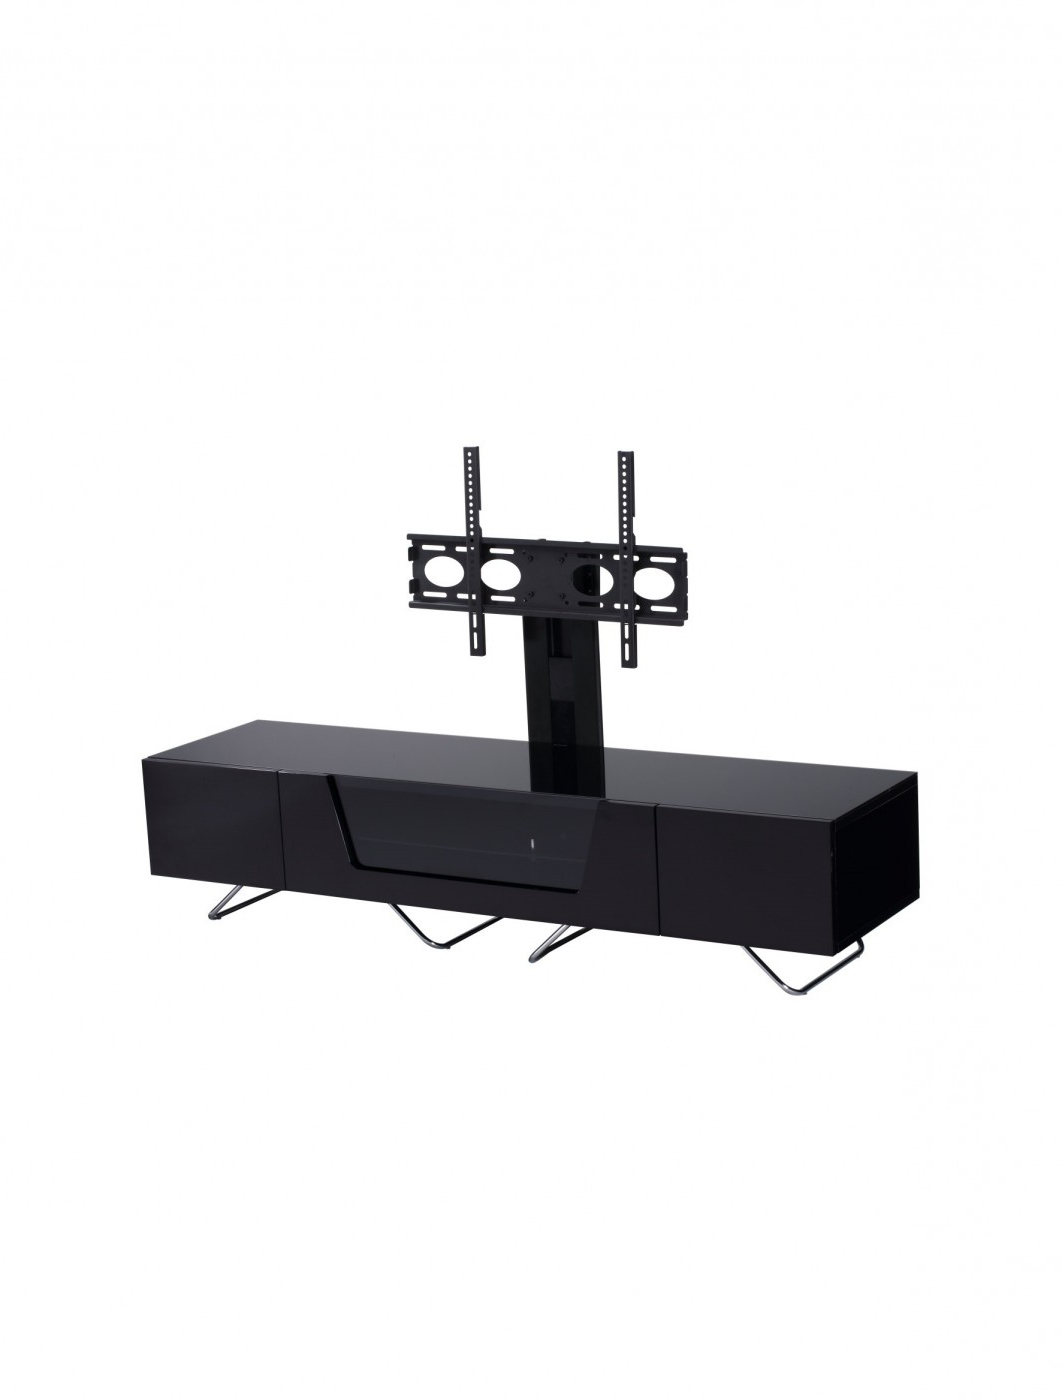 Alphason Chromium Cantilever Tv Stand Cro2 1600Bkt Bk (View 2 of 20)